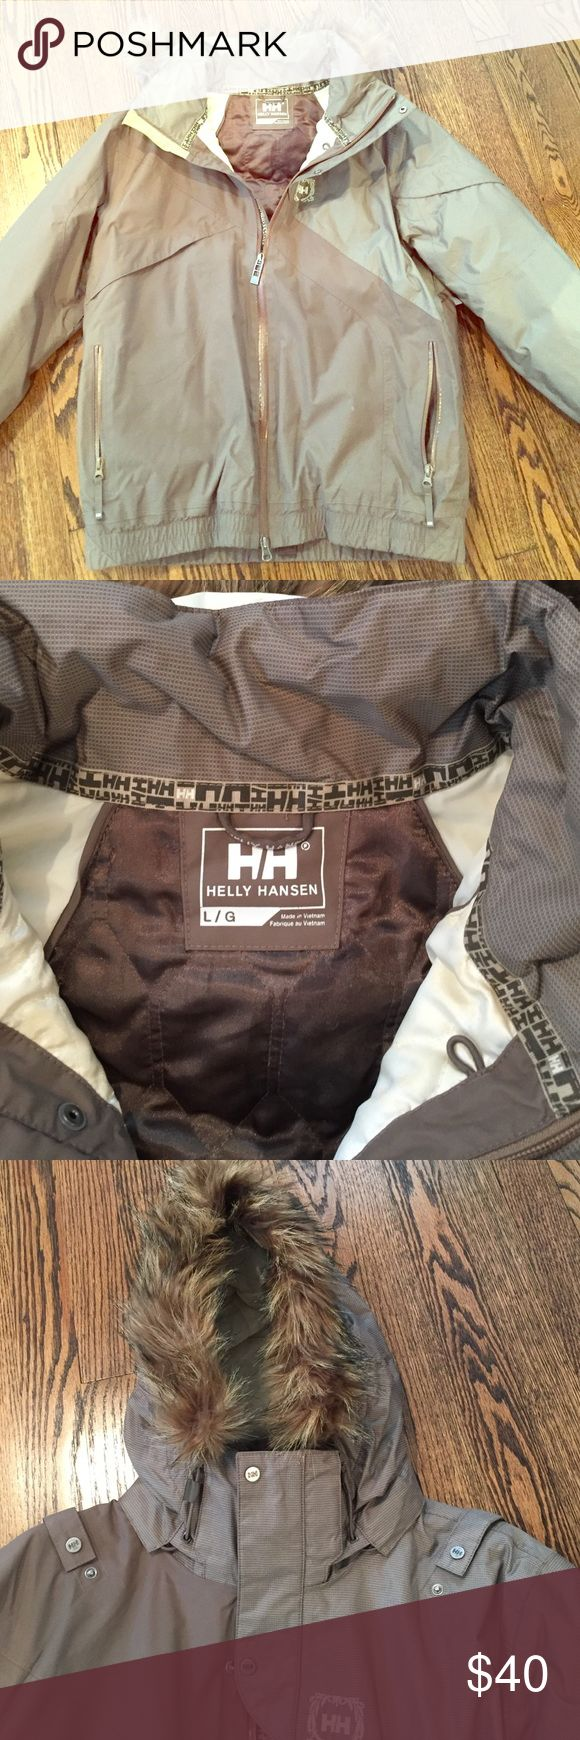 Helly Hansen - Snow Jacket This snow jacket is sure to keep you warm! Whether you're hitting the slopes or just fighting a wind chill, you can rely on this brand. Used twice before realizing I hated snowboarding. Helly Hansen Jackets & Coats Puffers